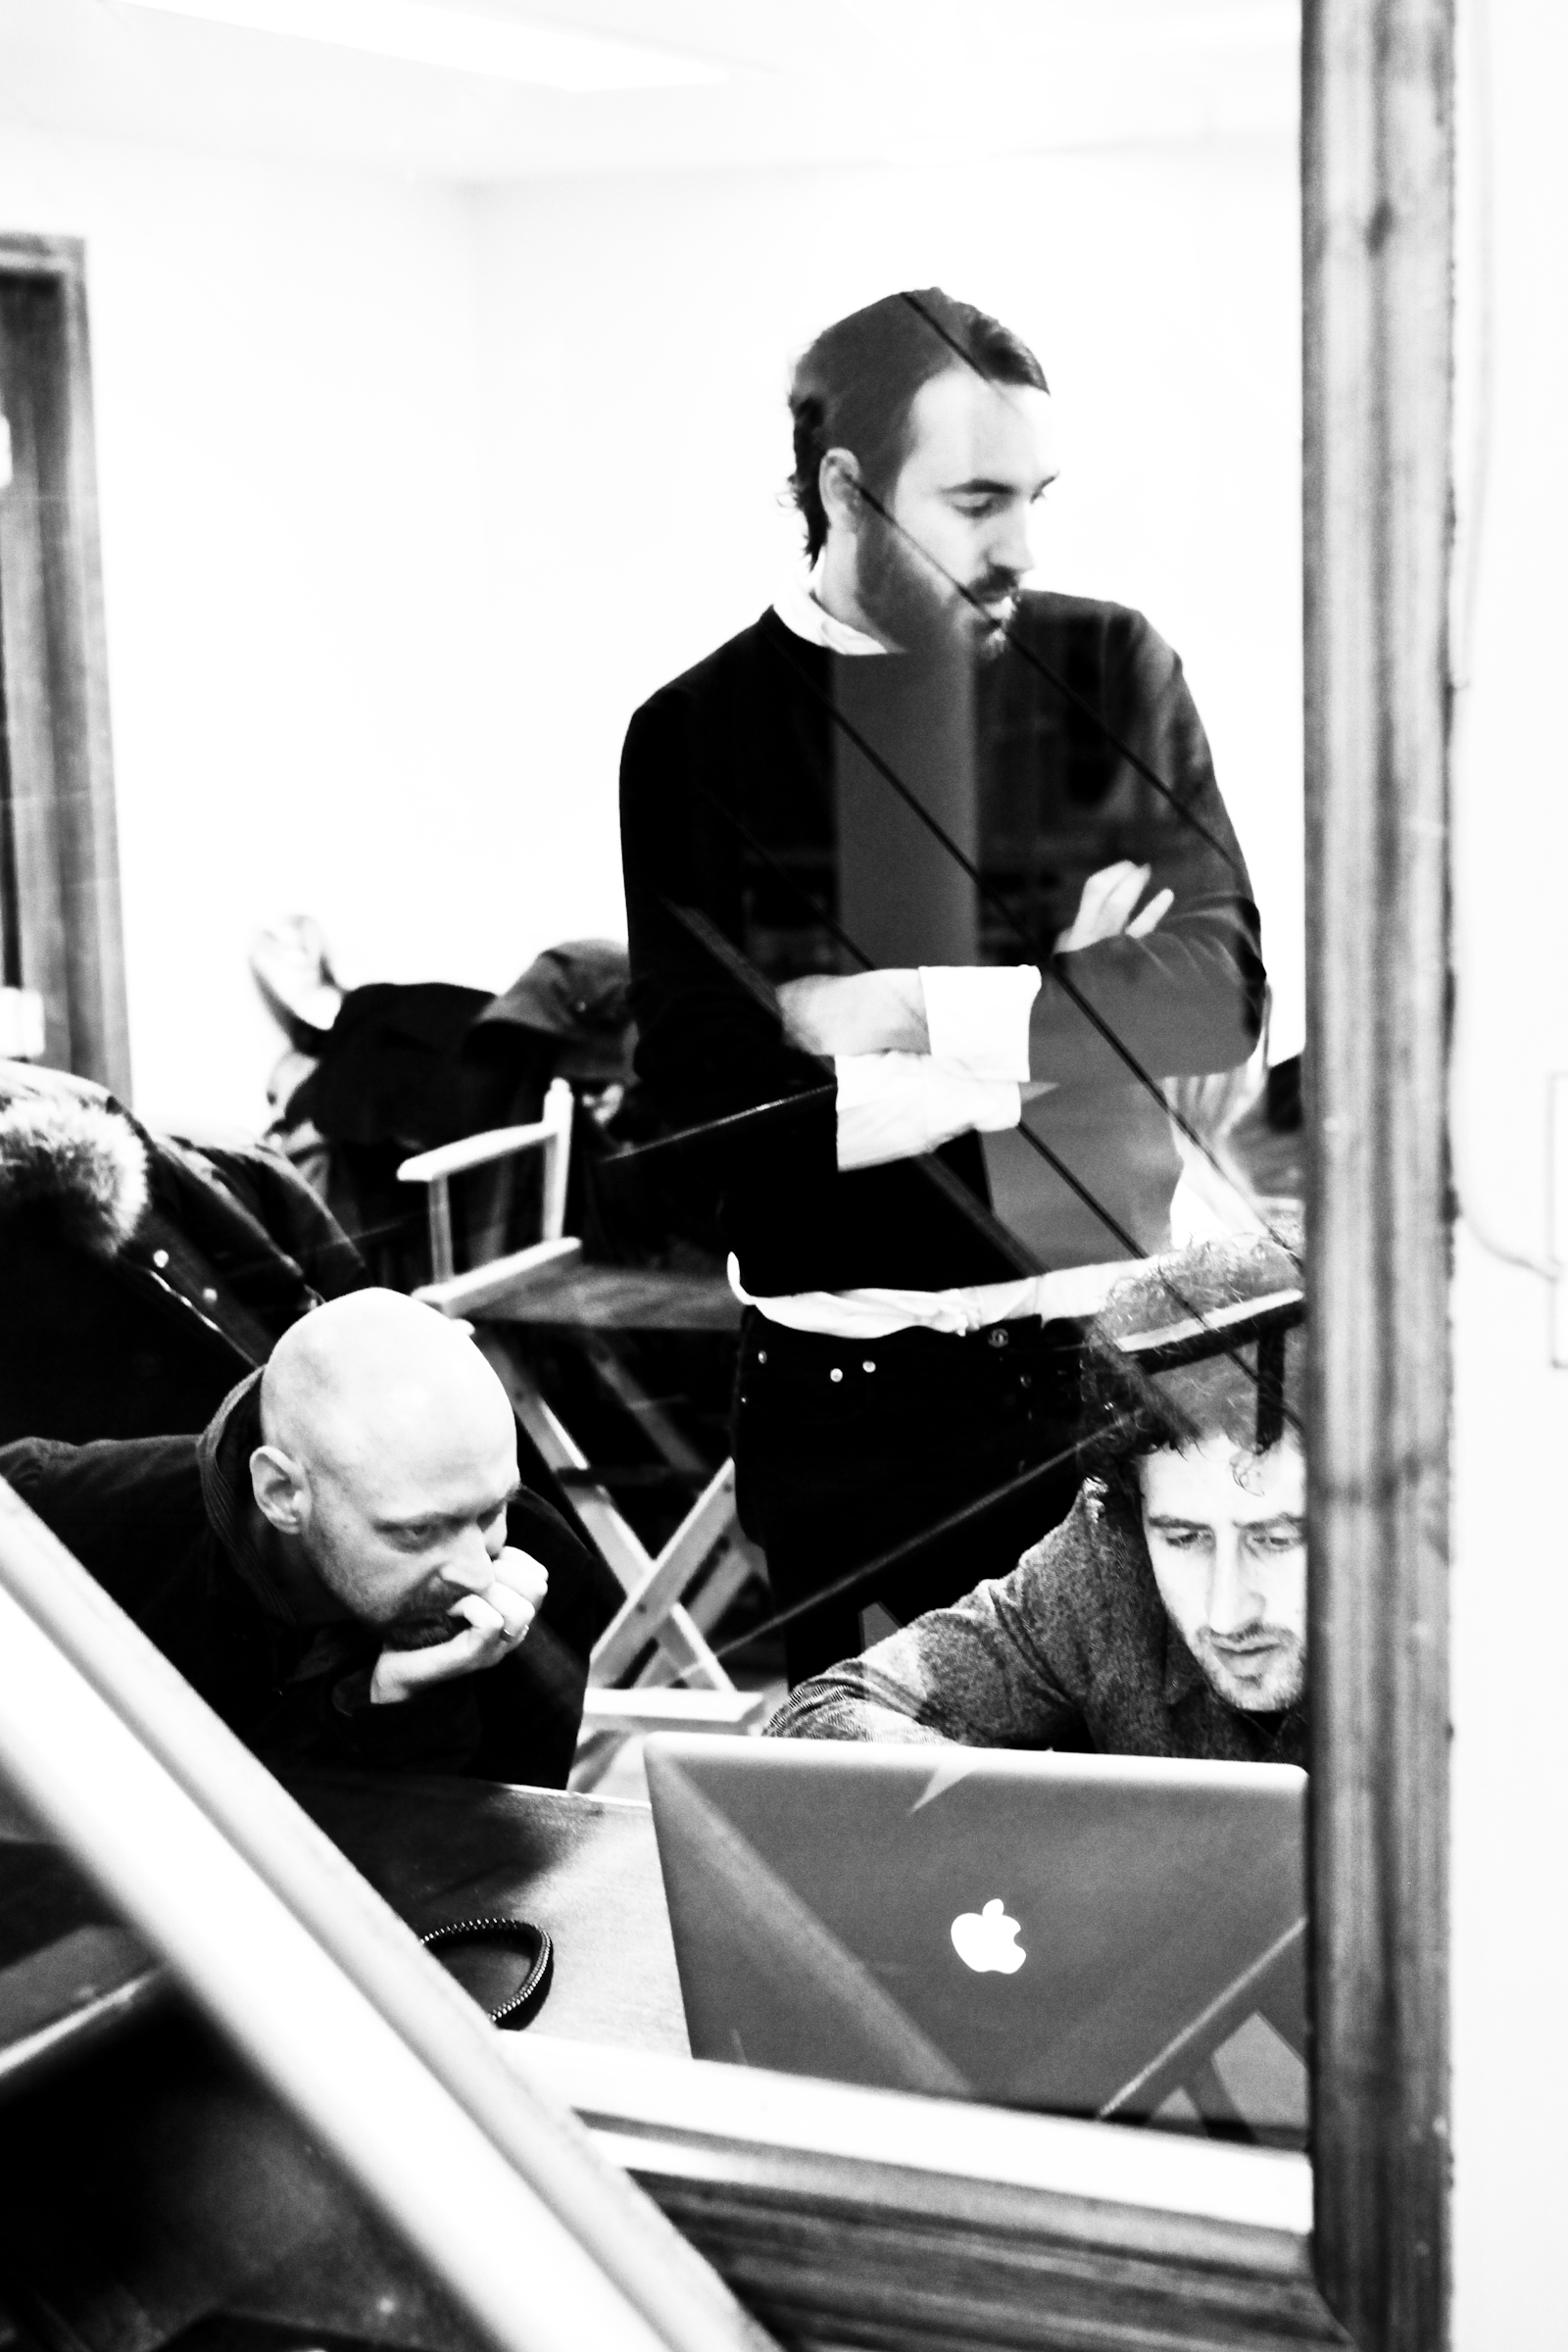 Jan Jacobs, Leo Premutico and Ferdinando Verderi - Nov 2007 on set for their 'Consumer is the medium' website production.